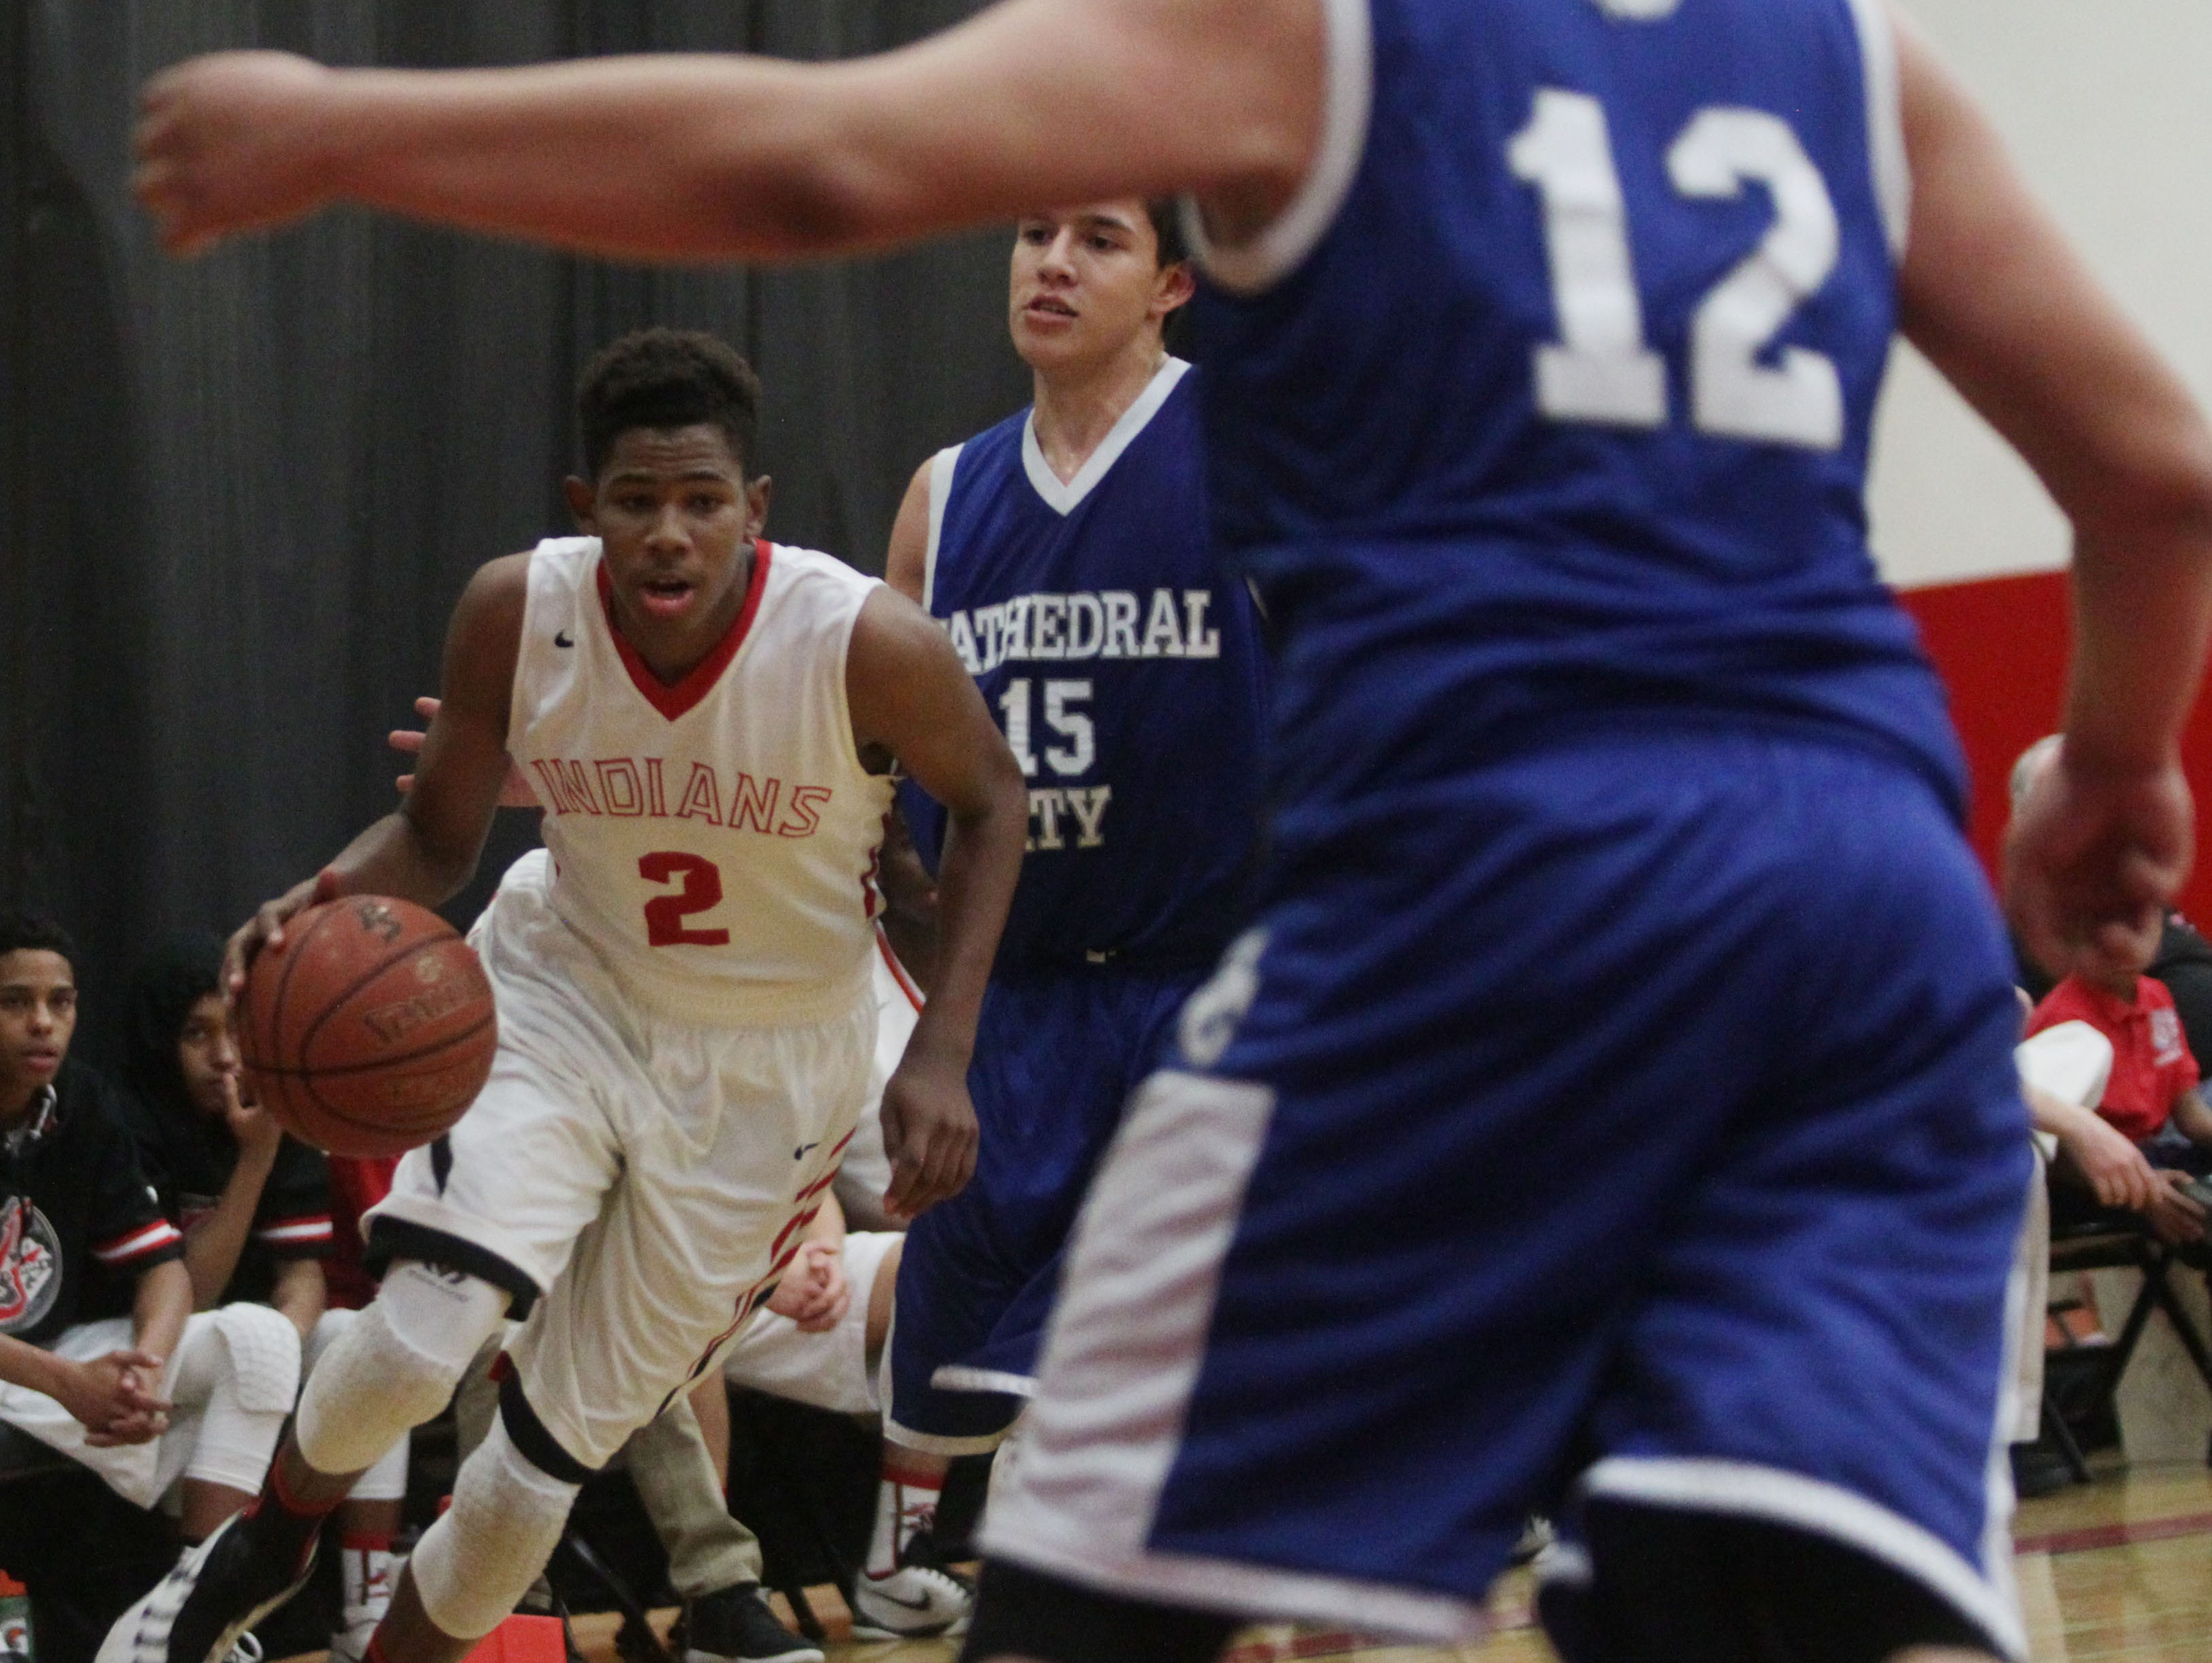 John Rich, of Palm Springs High School, drives to the basket during their home game against Cathedral City. Palm Springs won the game 80-43 and claimed the DVL title.